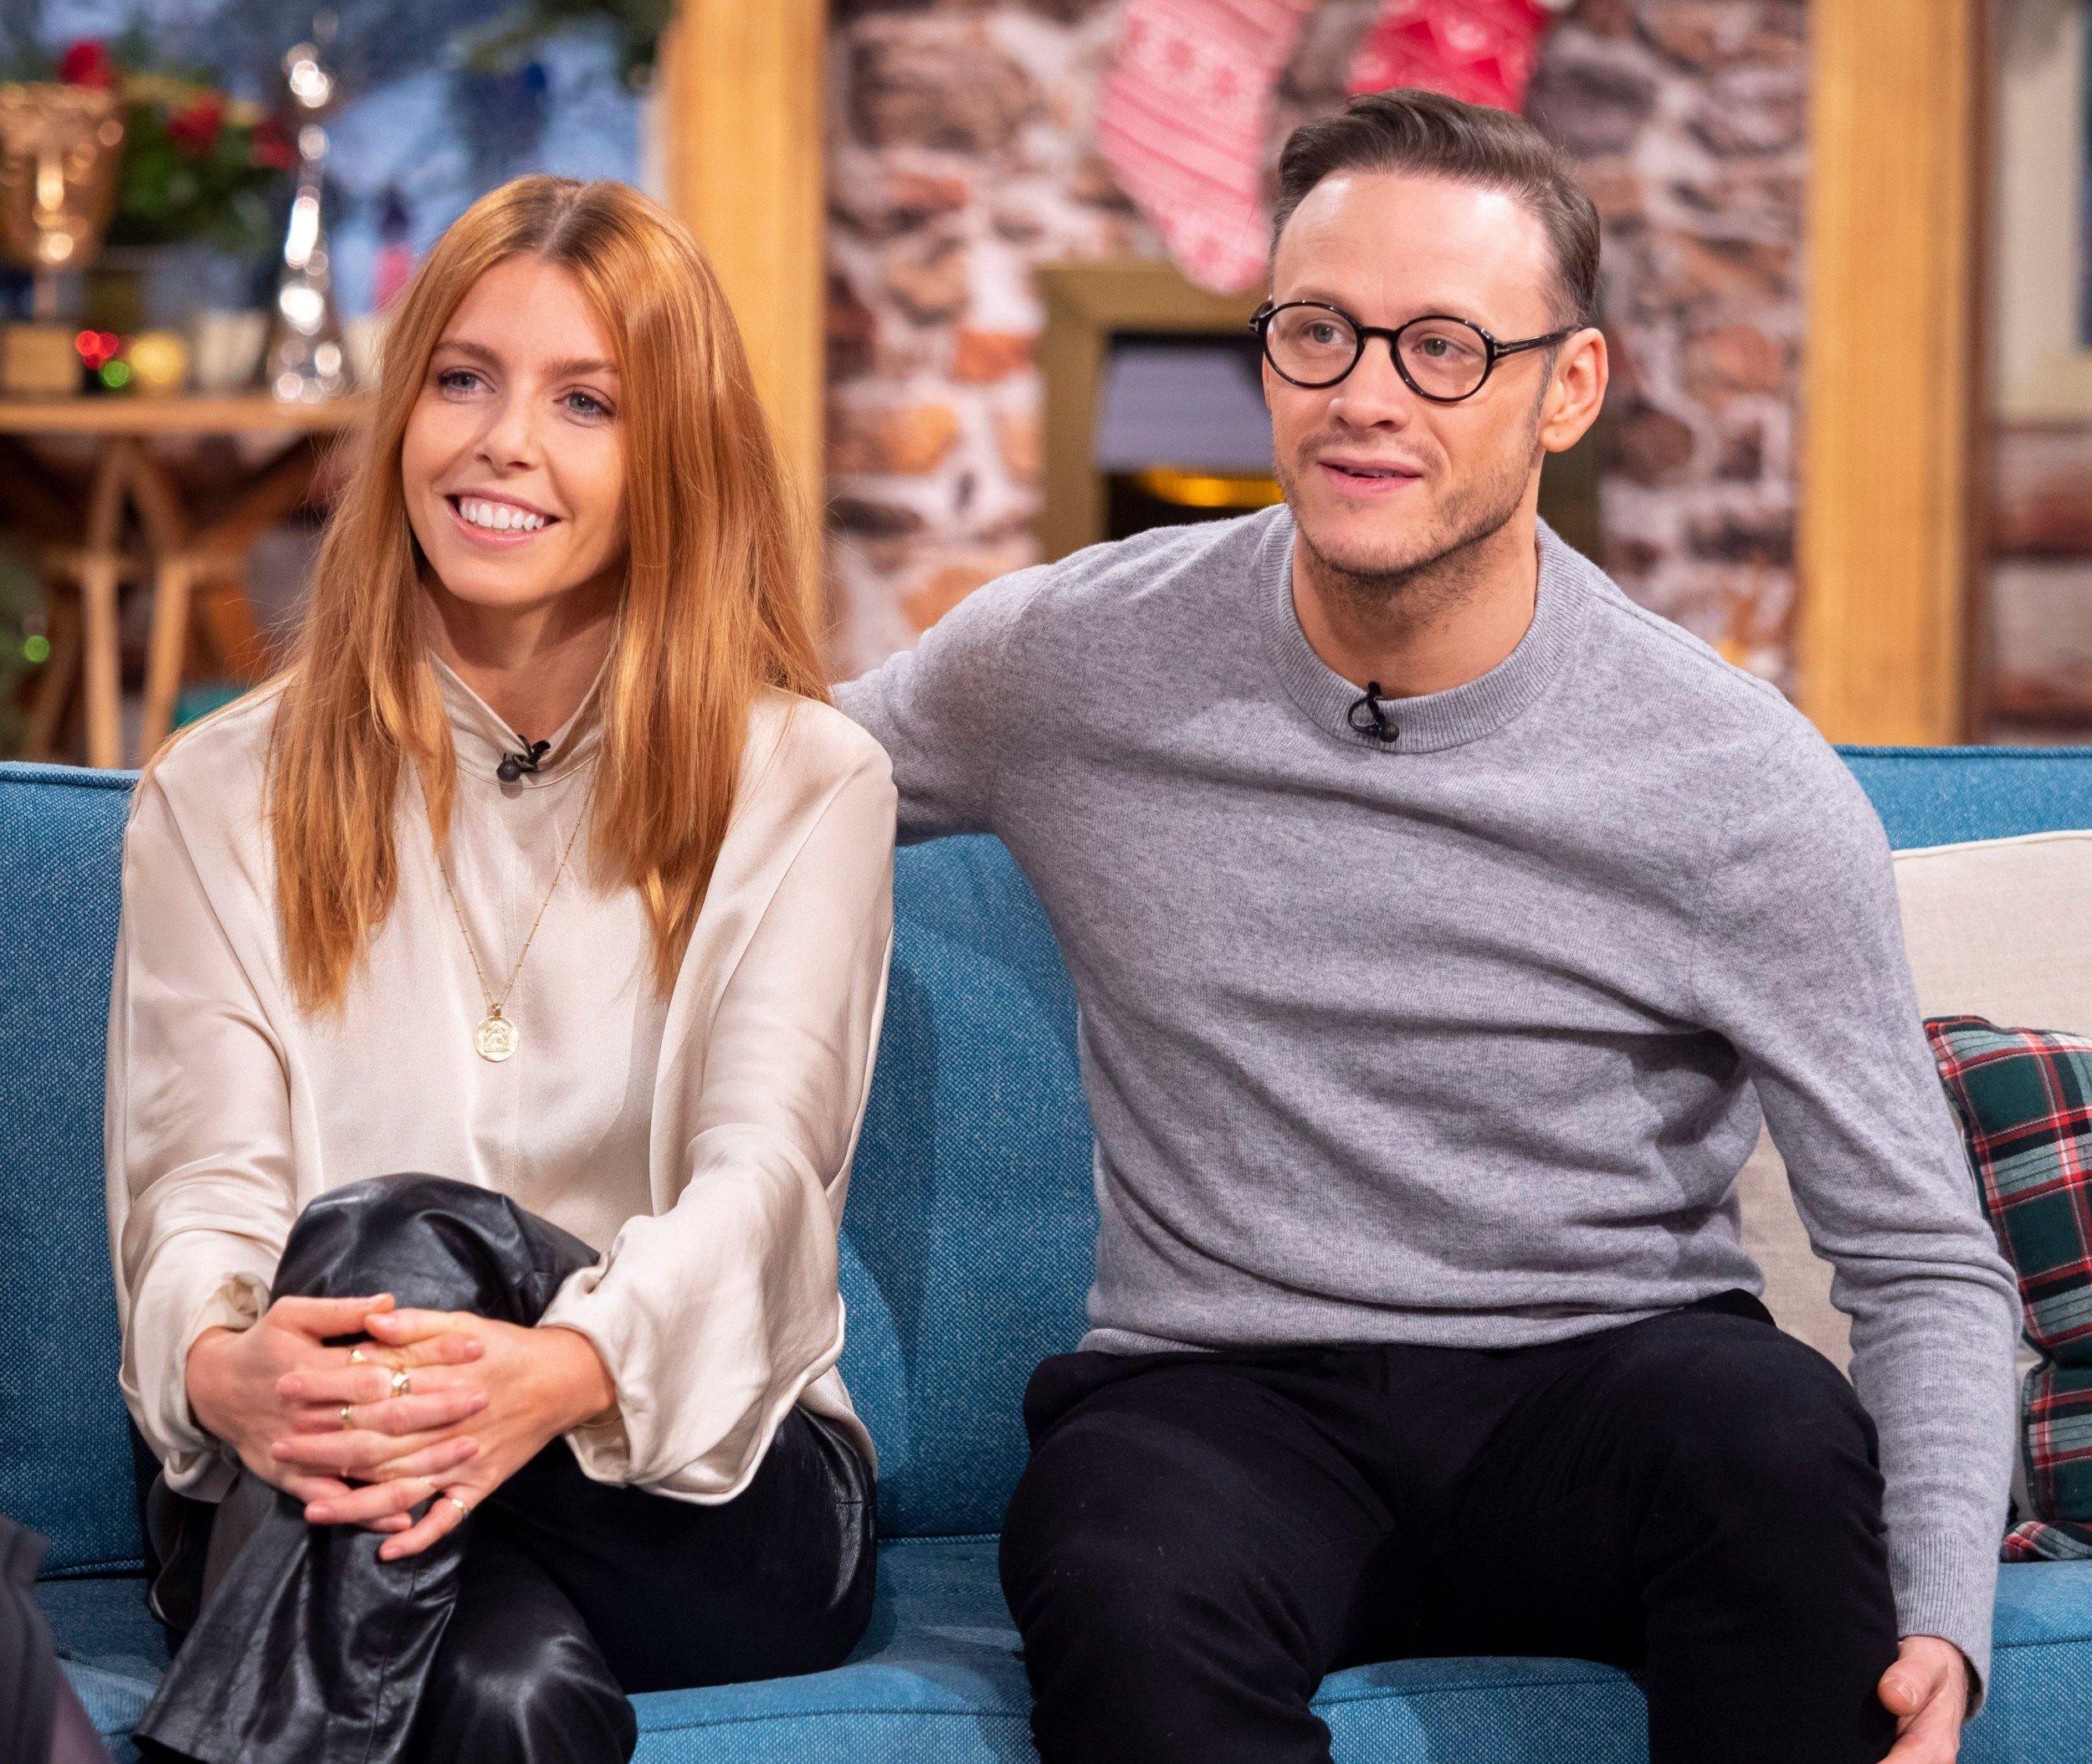 Kevin Clifton praises Stacey Dooley amid romance rumours as he speaks out about personal 'struggles'